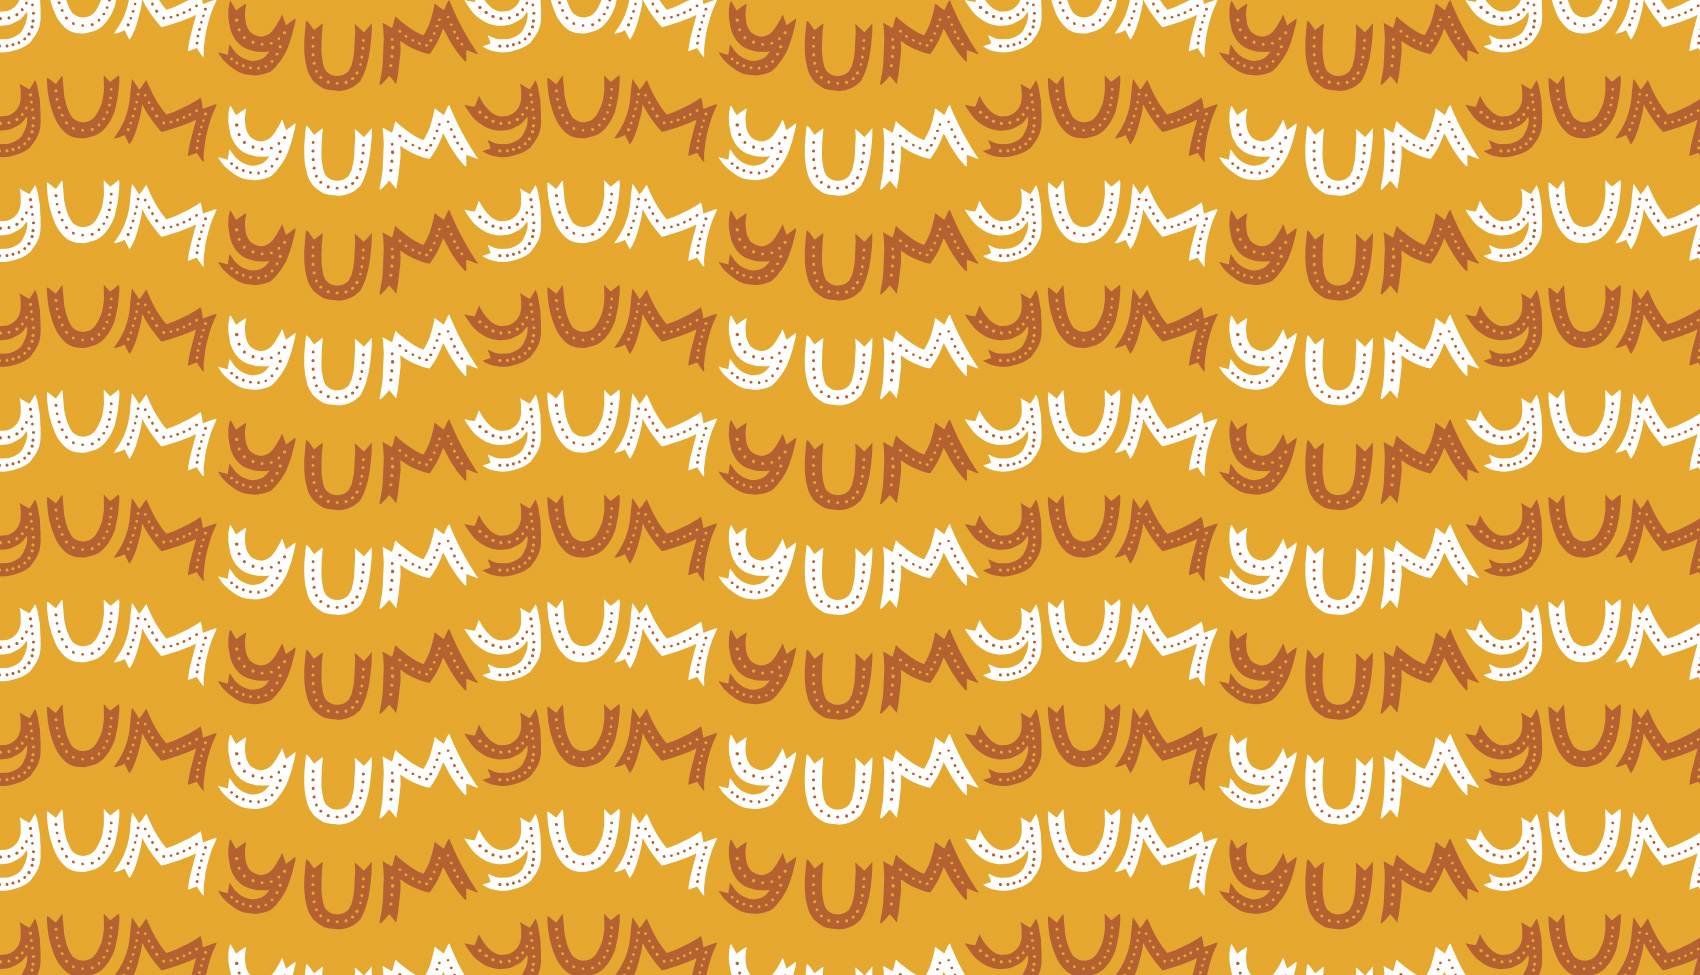 Overall YUM YUM YUM pattern in waves, hand lettered bright lights typography.